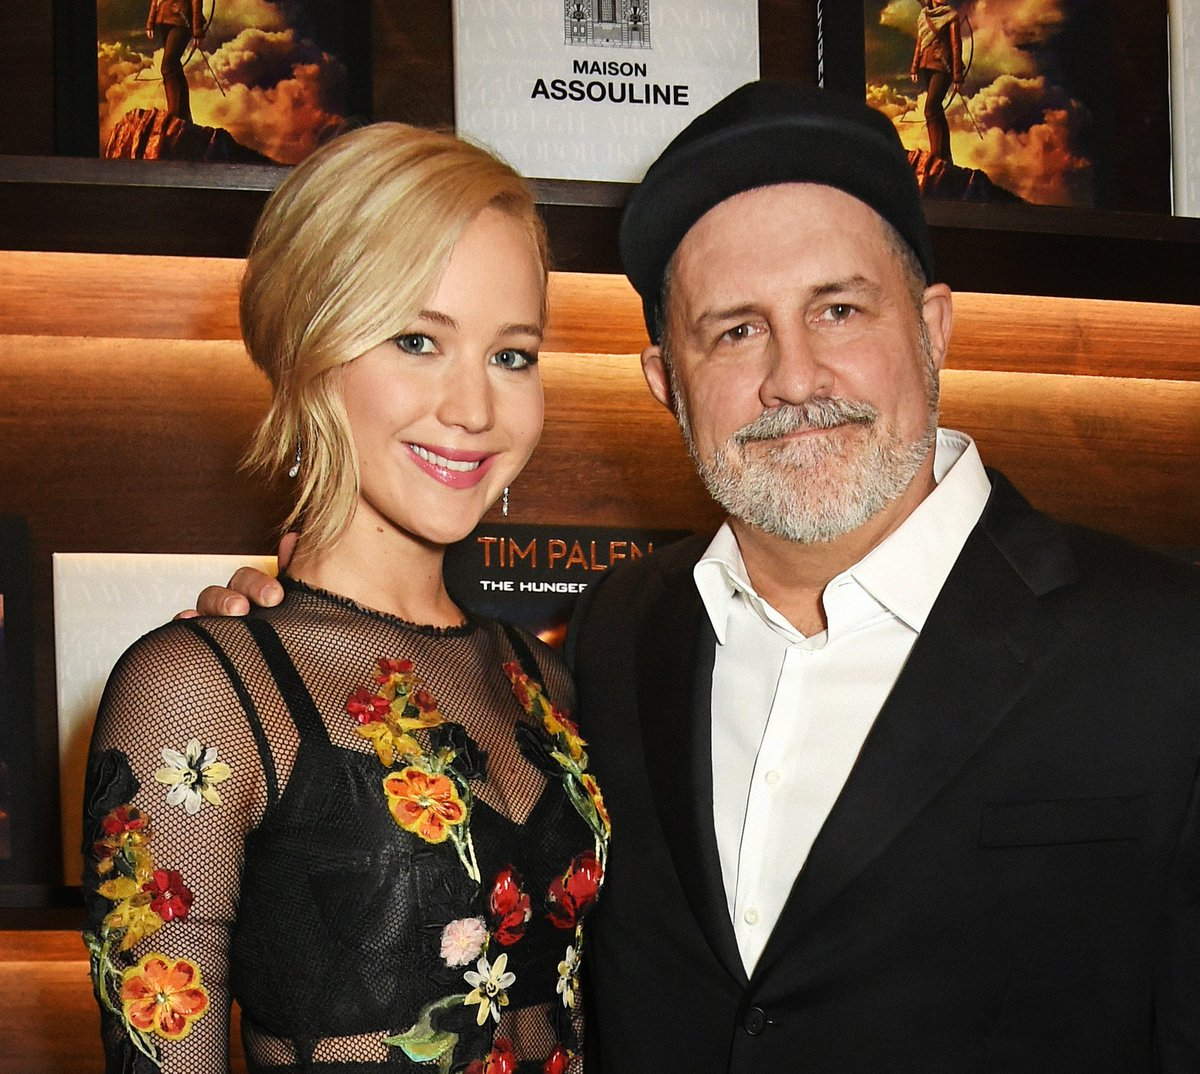 Congratulations to #JenniferLawrence on her #GoldenGlobes win! You are still the girl on fire! #Assouline https://t.co/BmwPWkaA6C